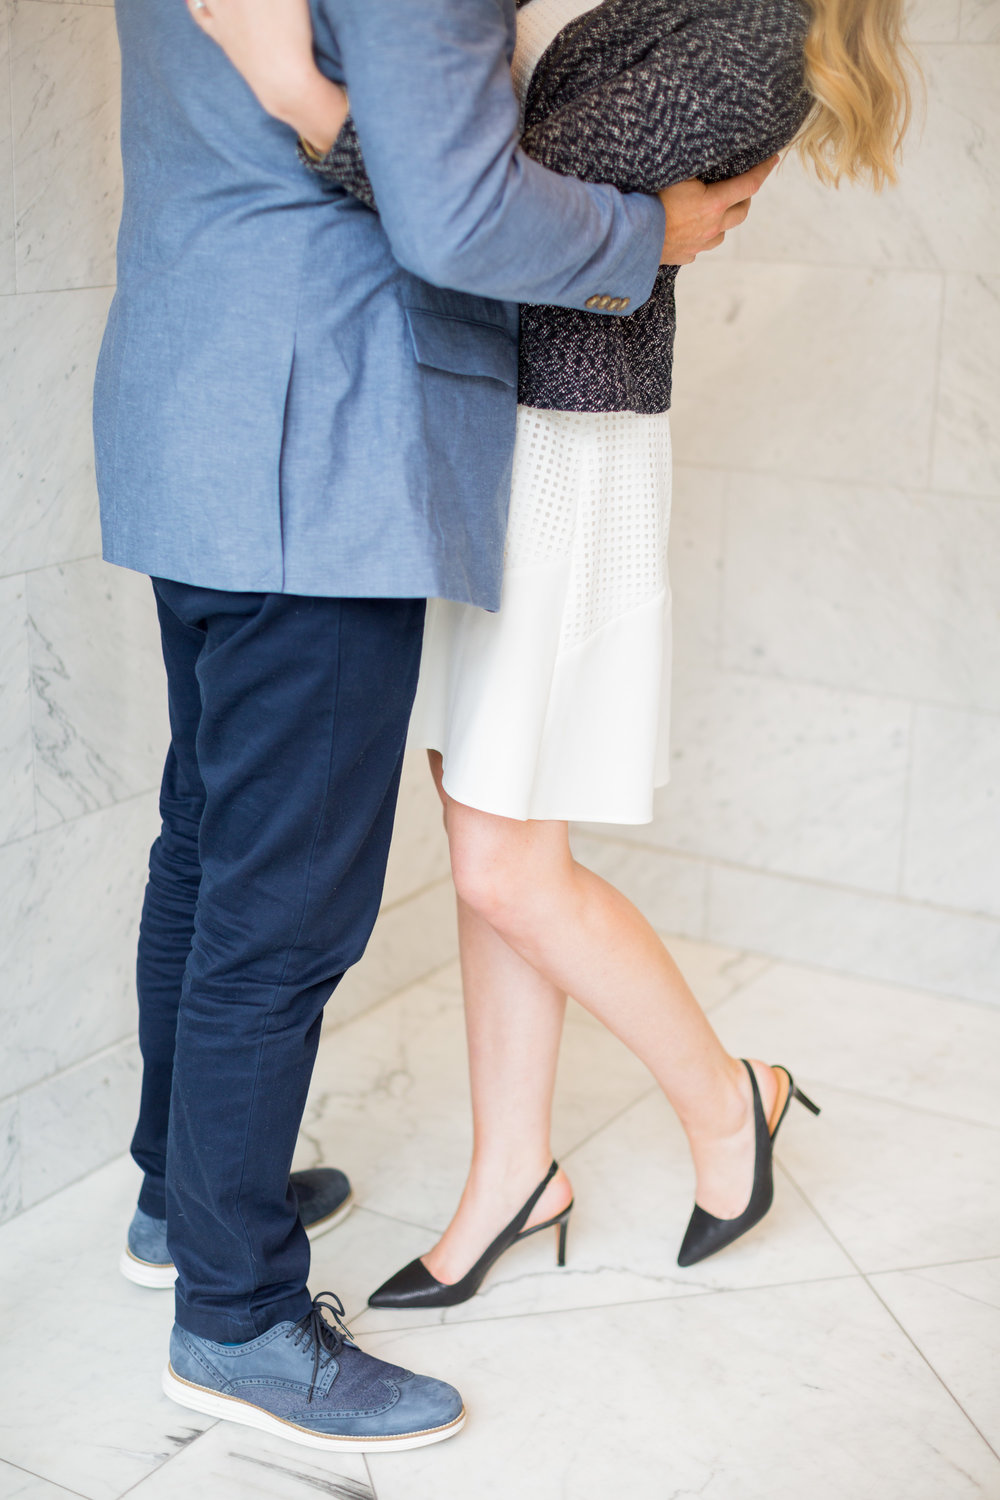 Melissa Kruse Photography - Courtney & JP Gramercy NYC Engagement Photos-86.jpg